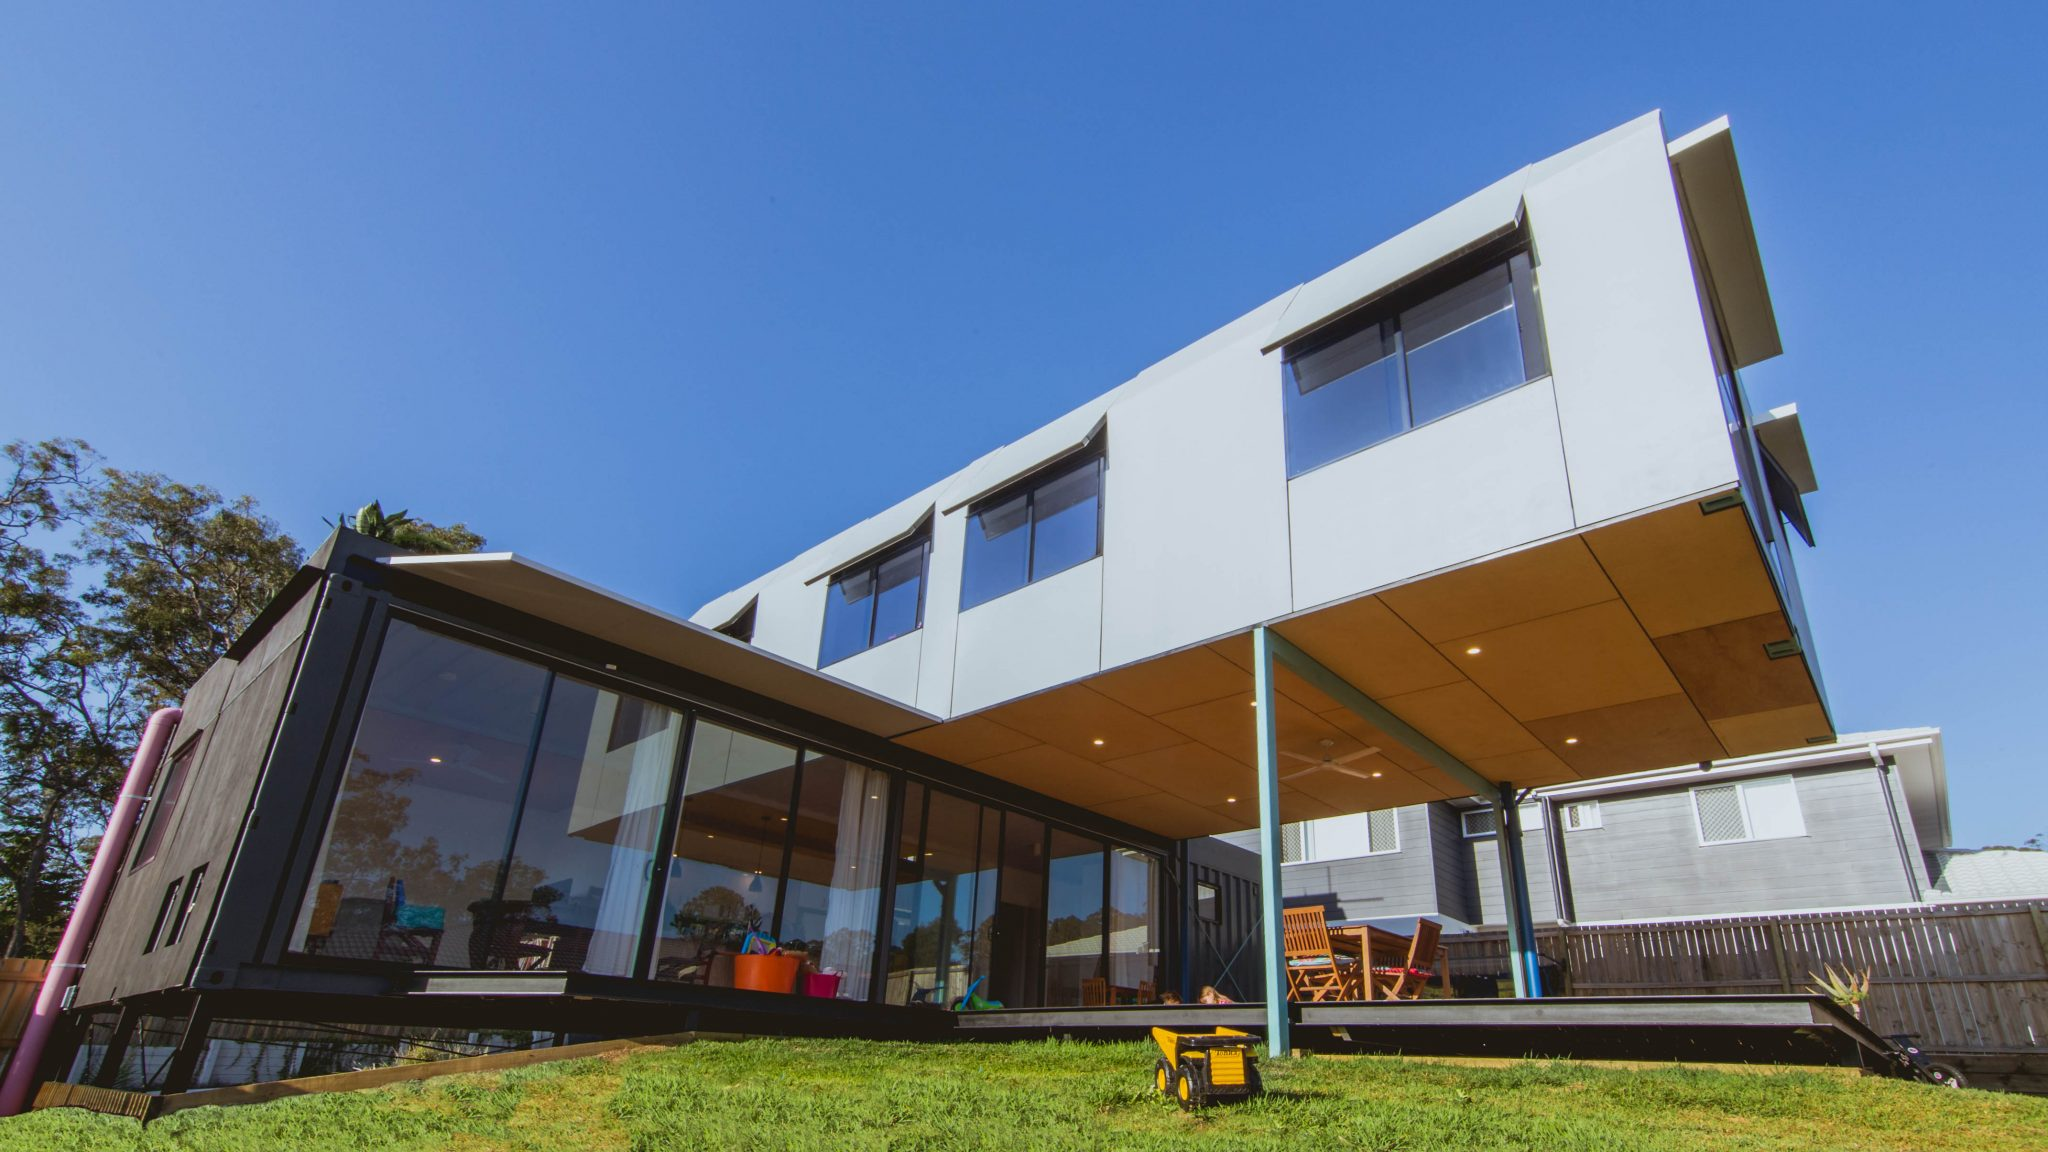 Oxley modular house australia pop blocks - Container homes queensland ...